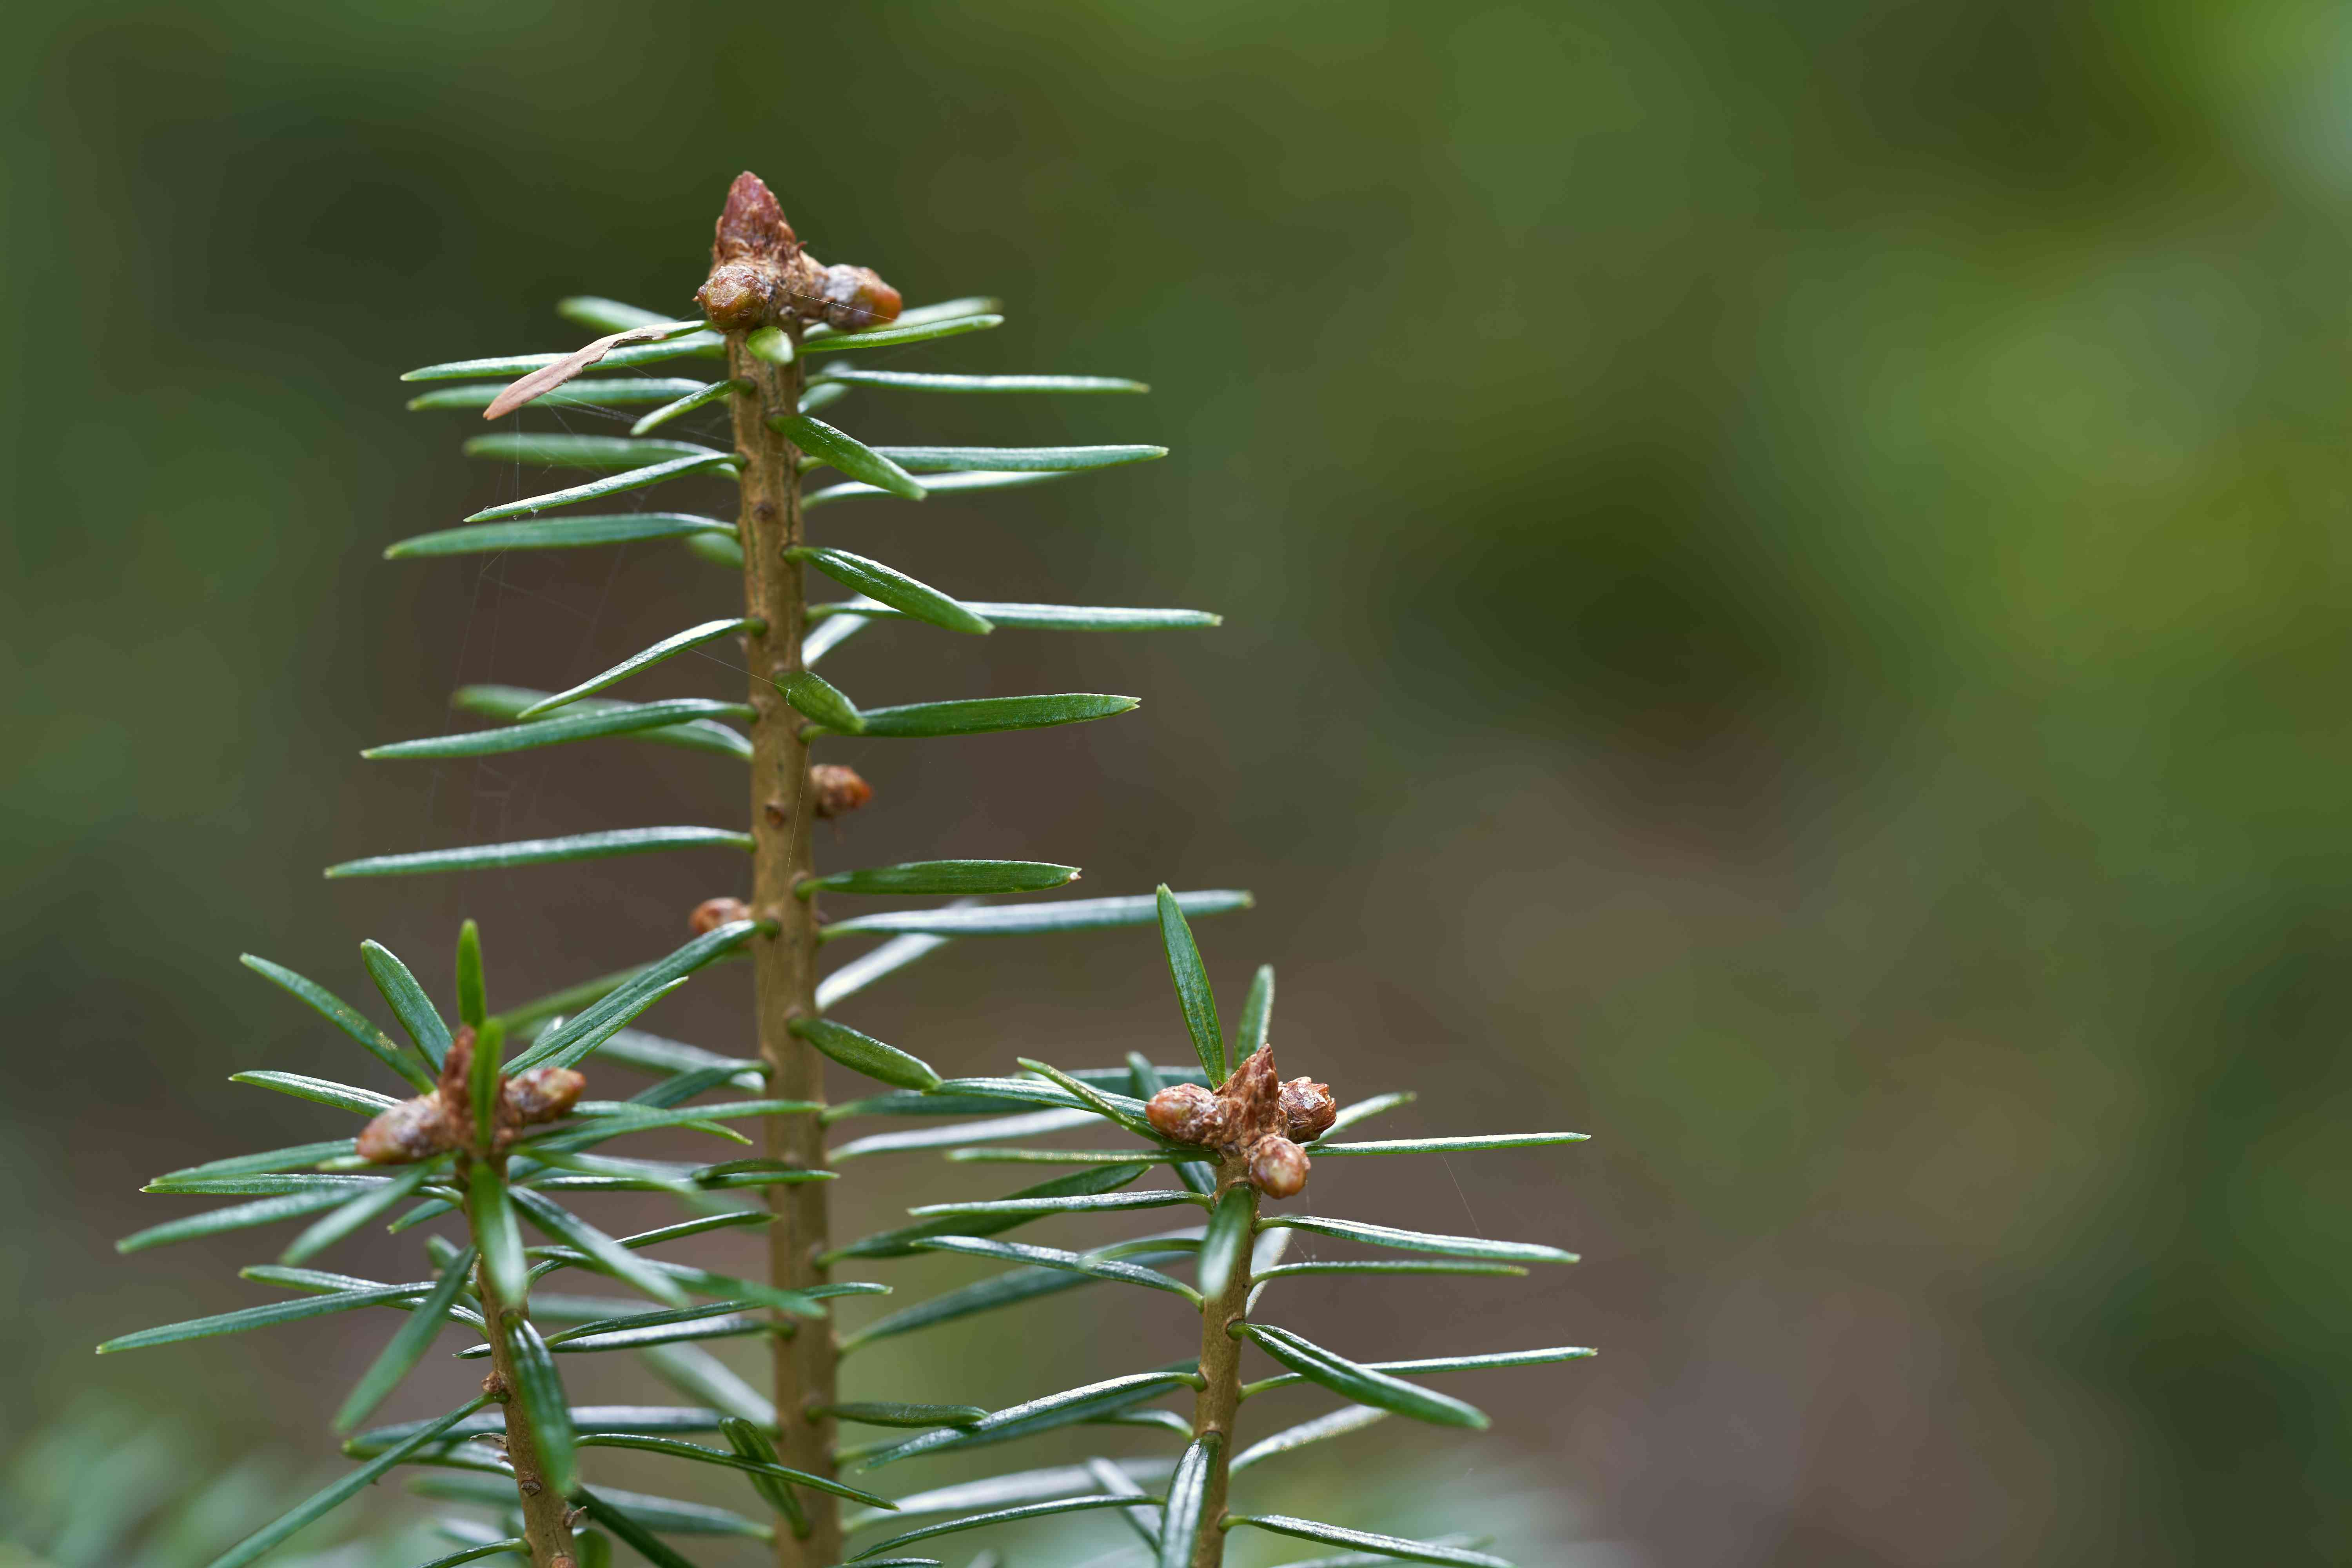 Top of young Abies alba tree on the blurred background. Also known as European silver fir or silver fir.